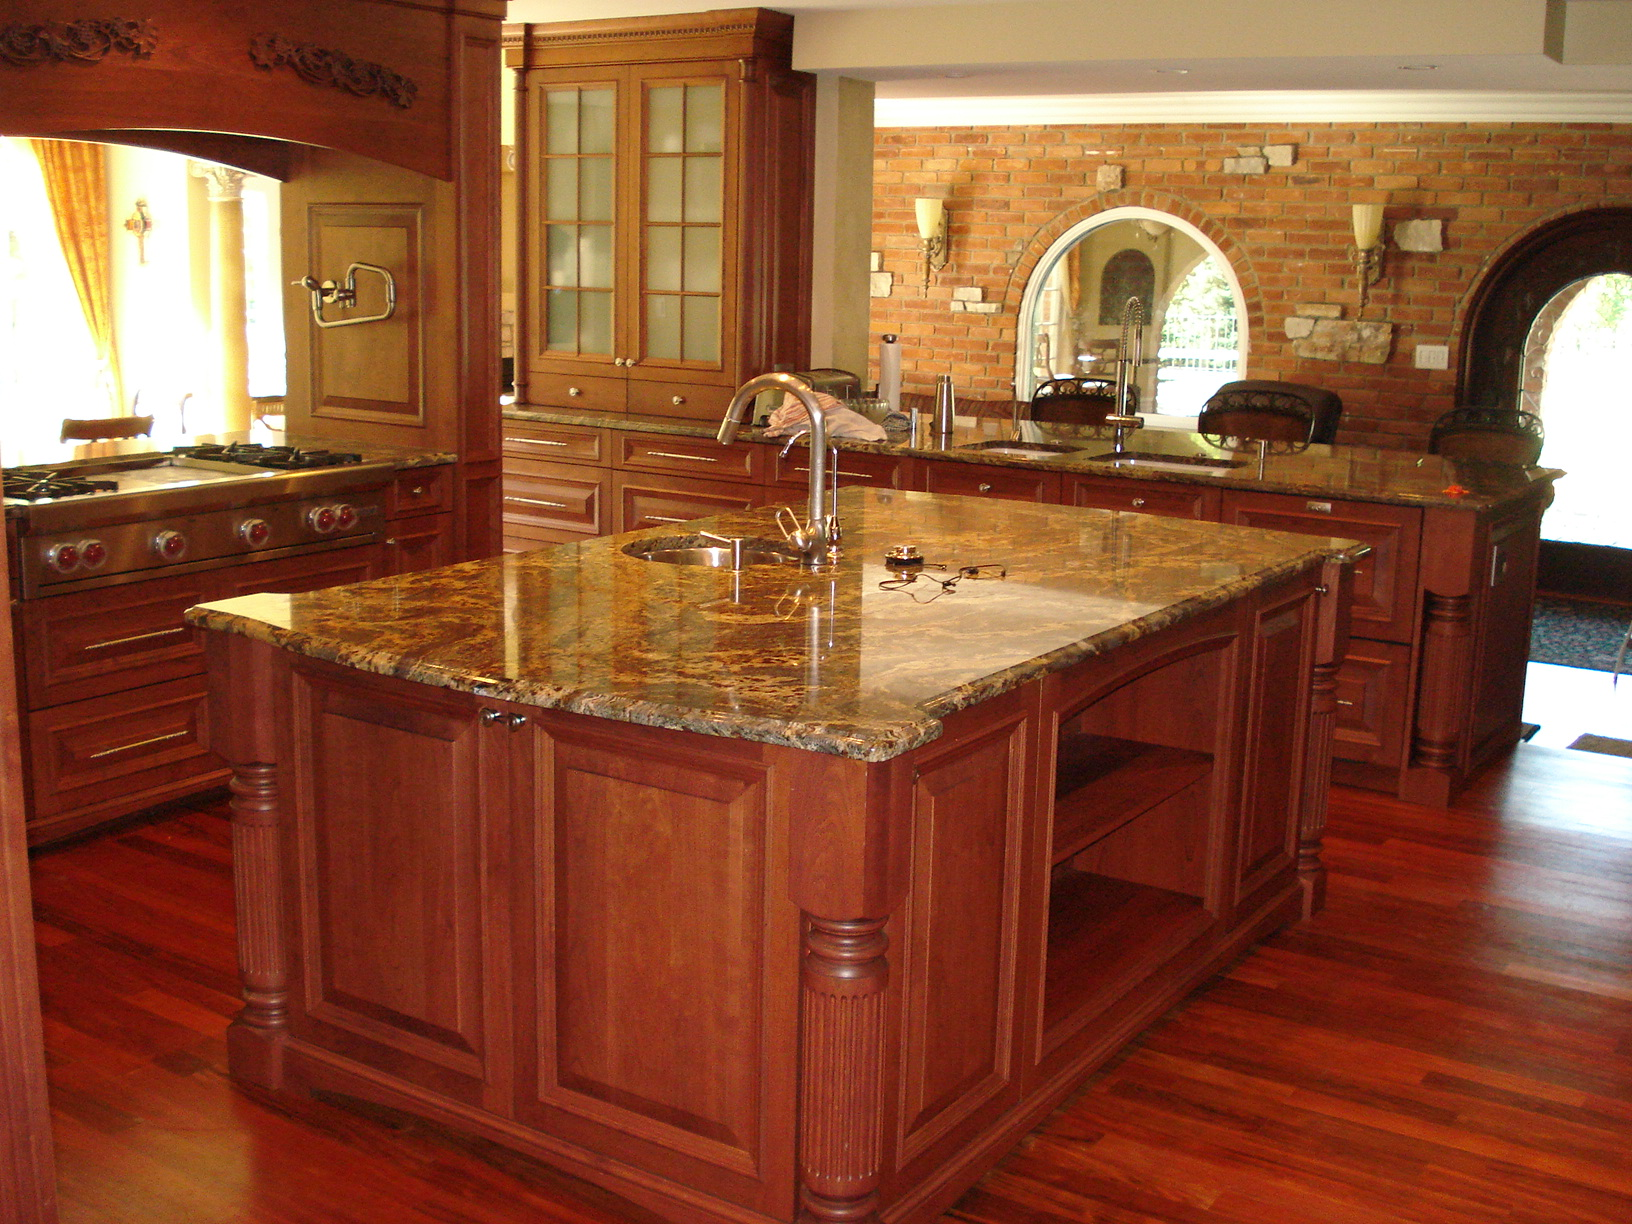 granite countertops rigo tile - Granite Countertop Pictures Kitchen